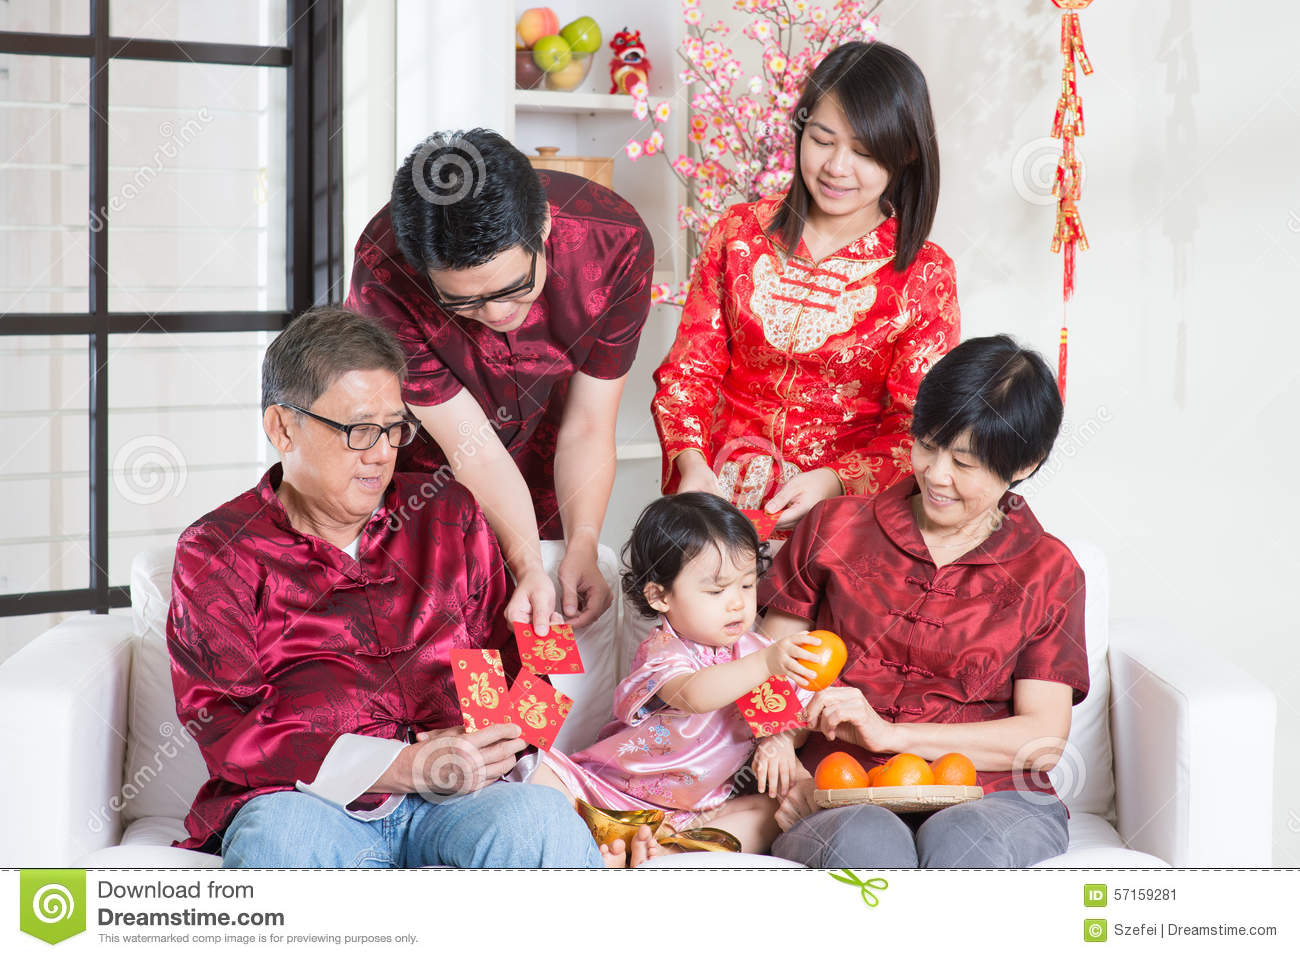 How to Celebrate Chinese New Year's Day